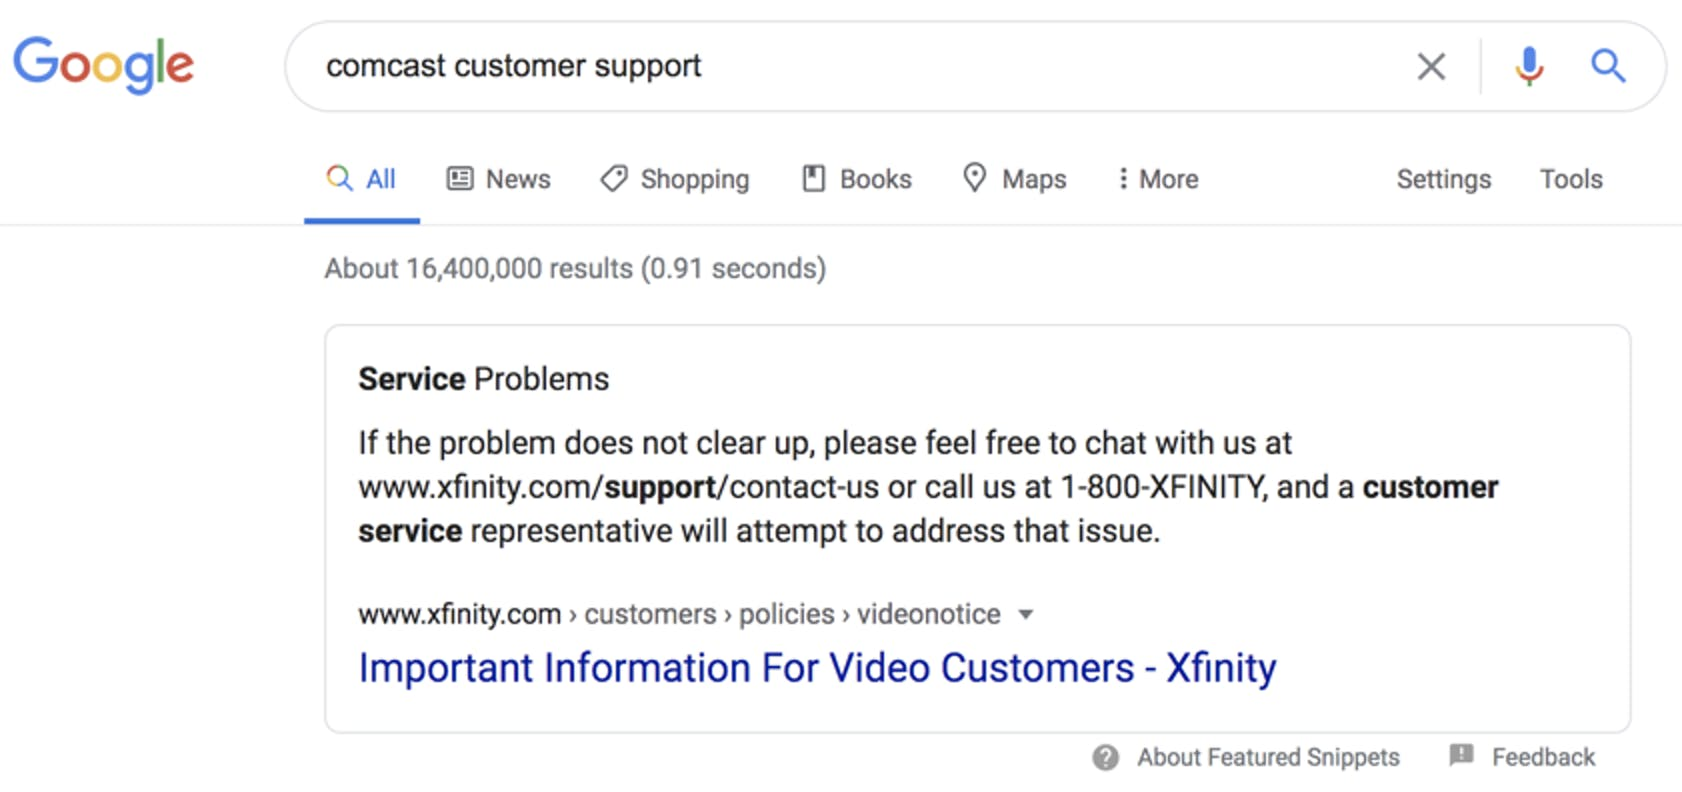 google featured snippet showing customer service phone number